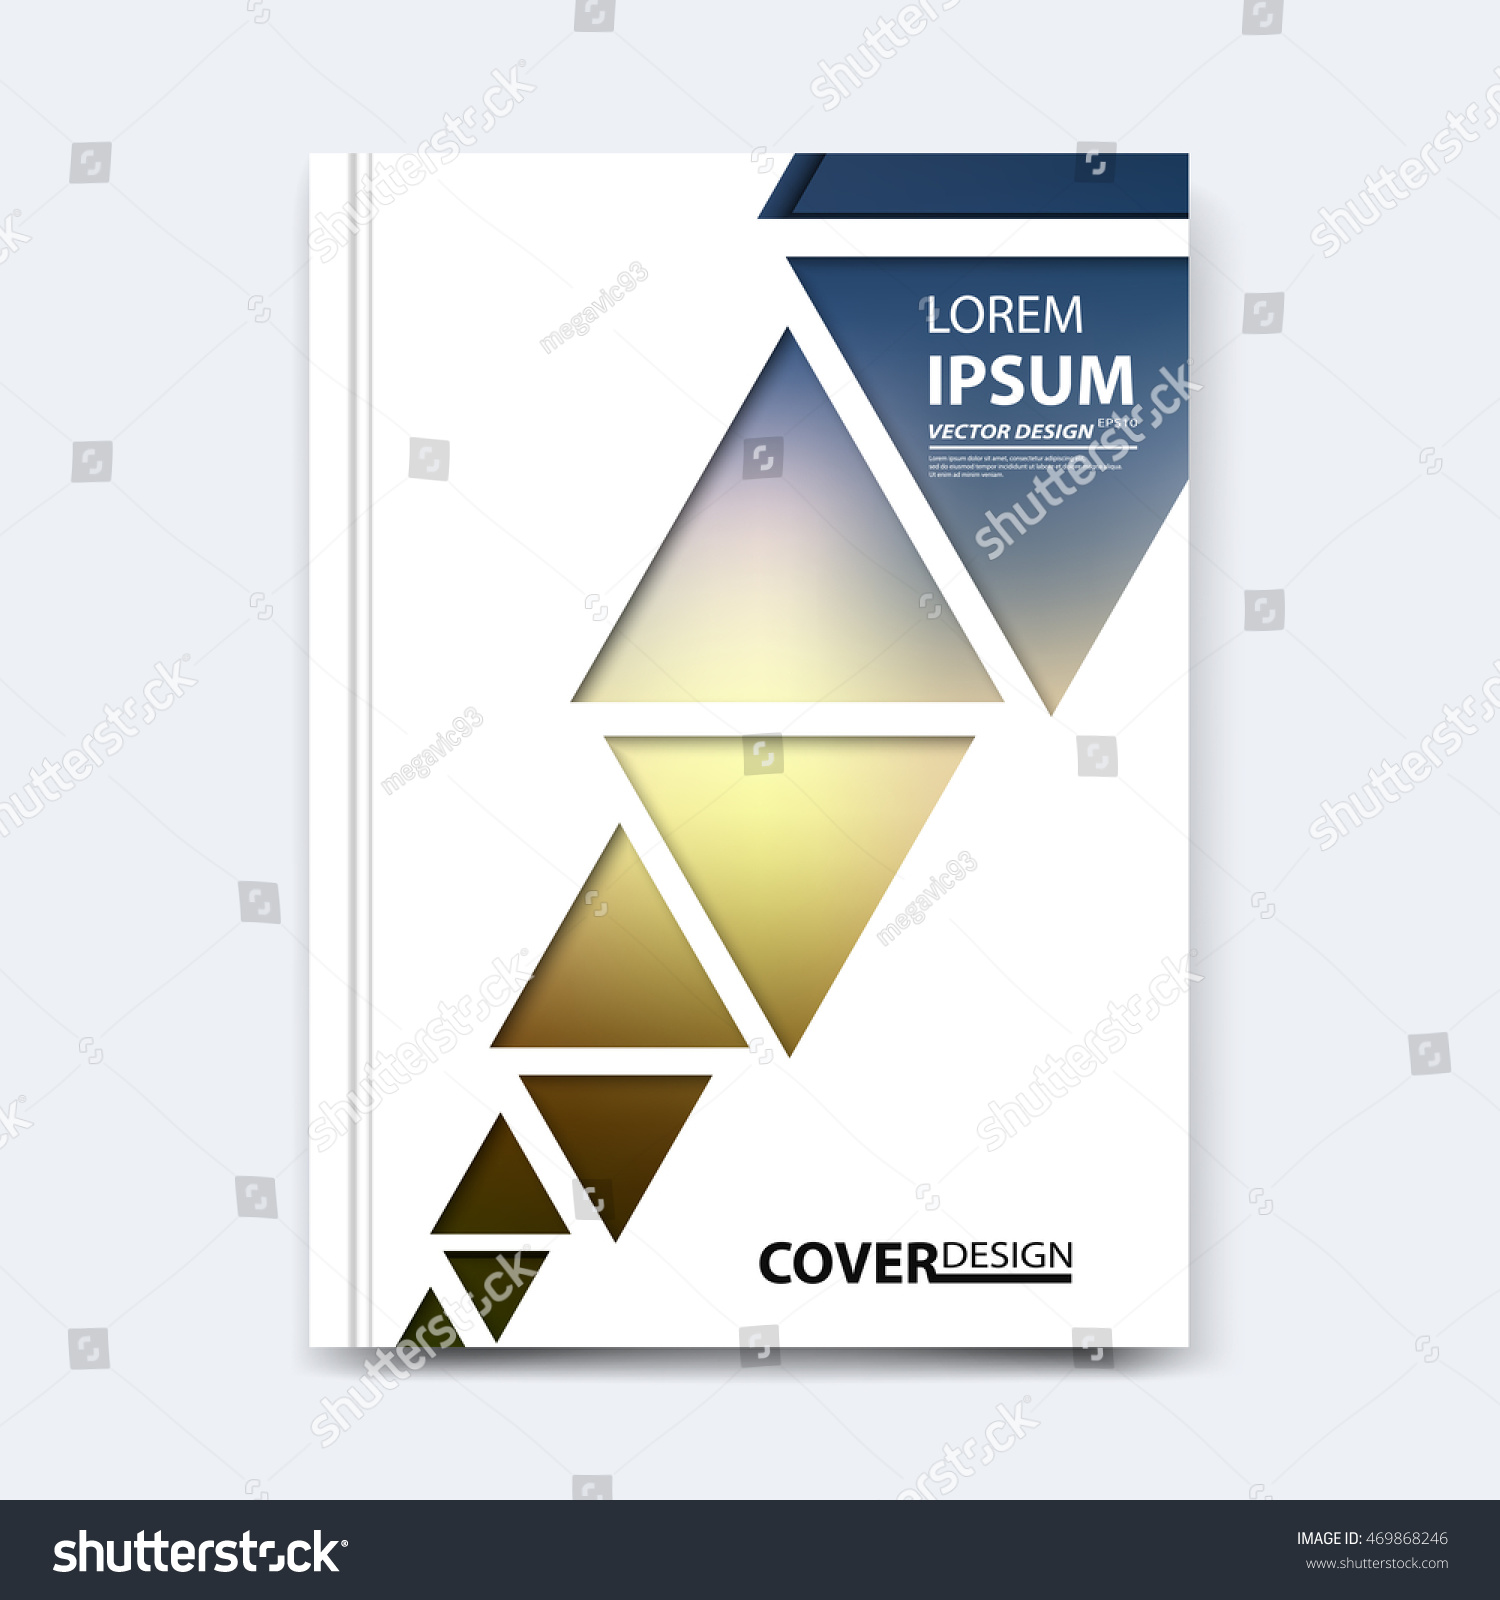 abstract vector triangle design for cover poster banner flayer abstract vector triangle design for cover poster banner flayer business card